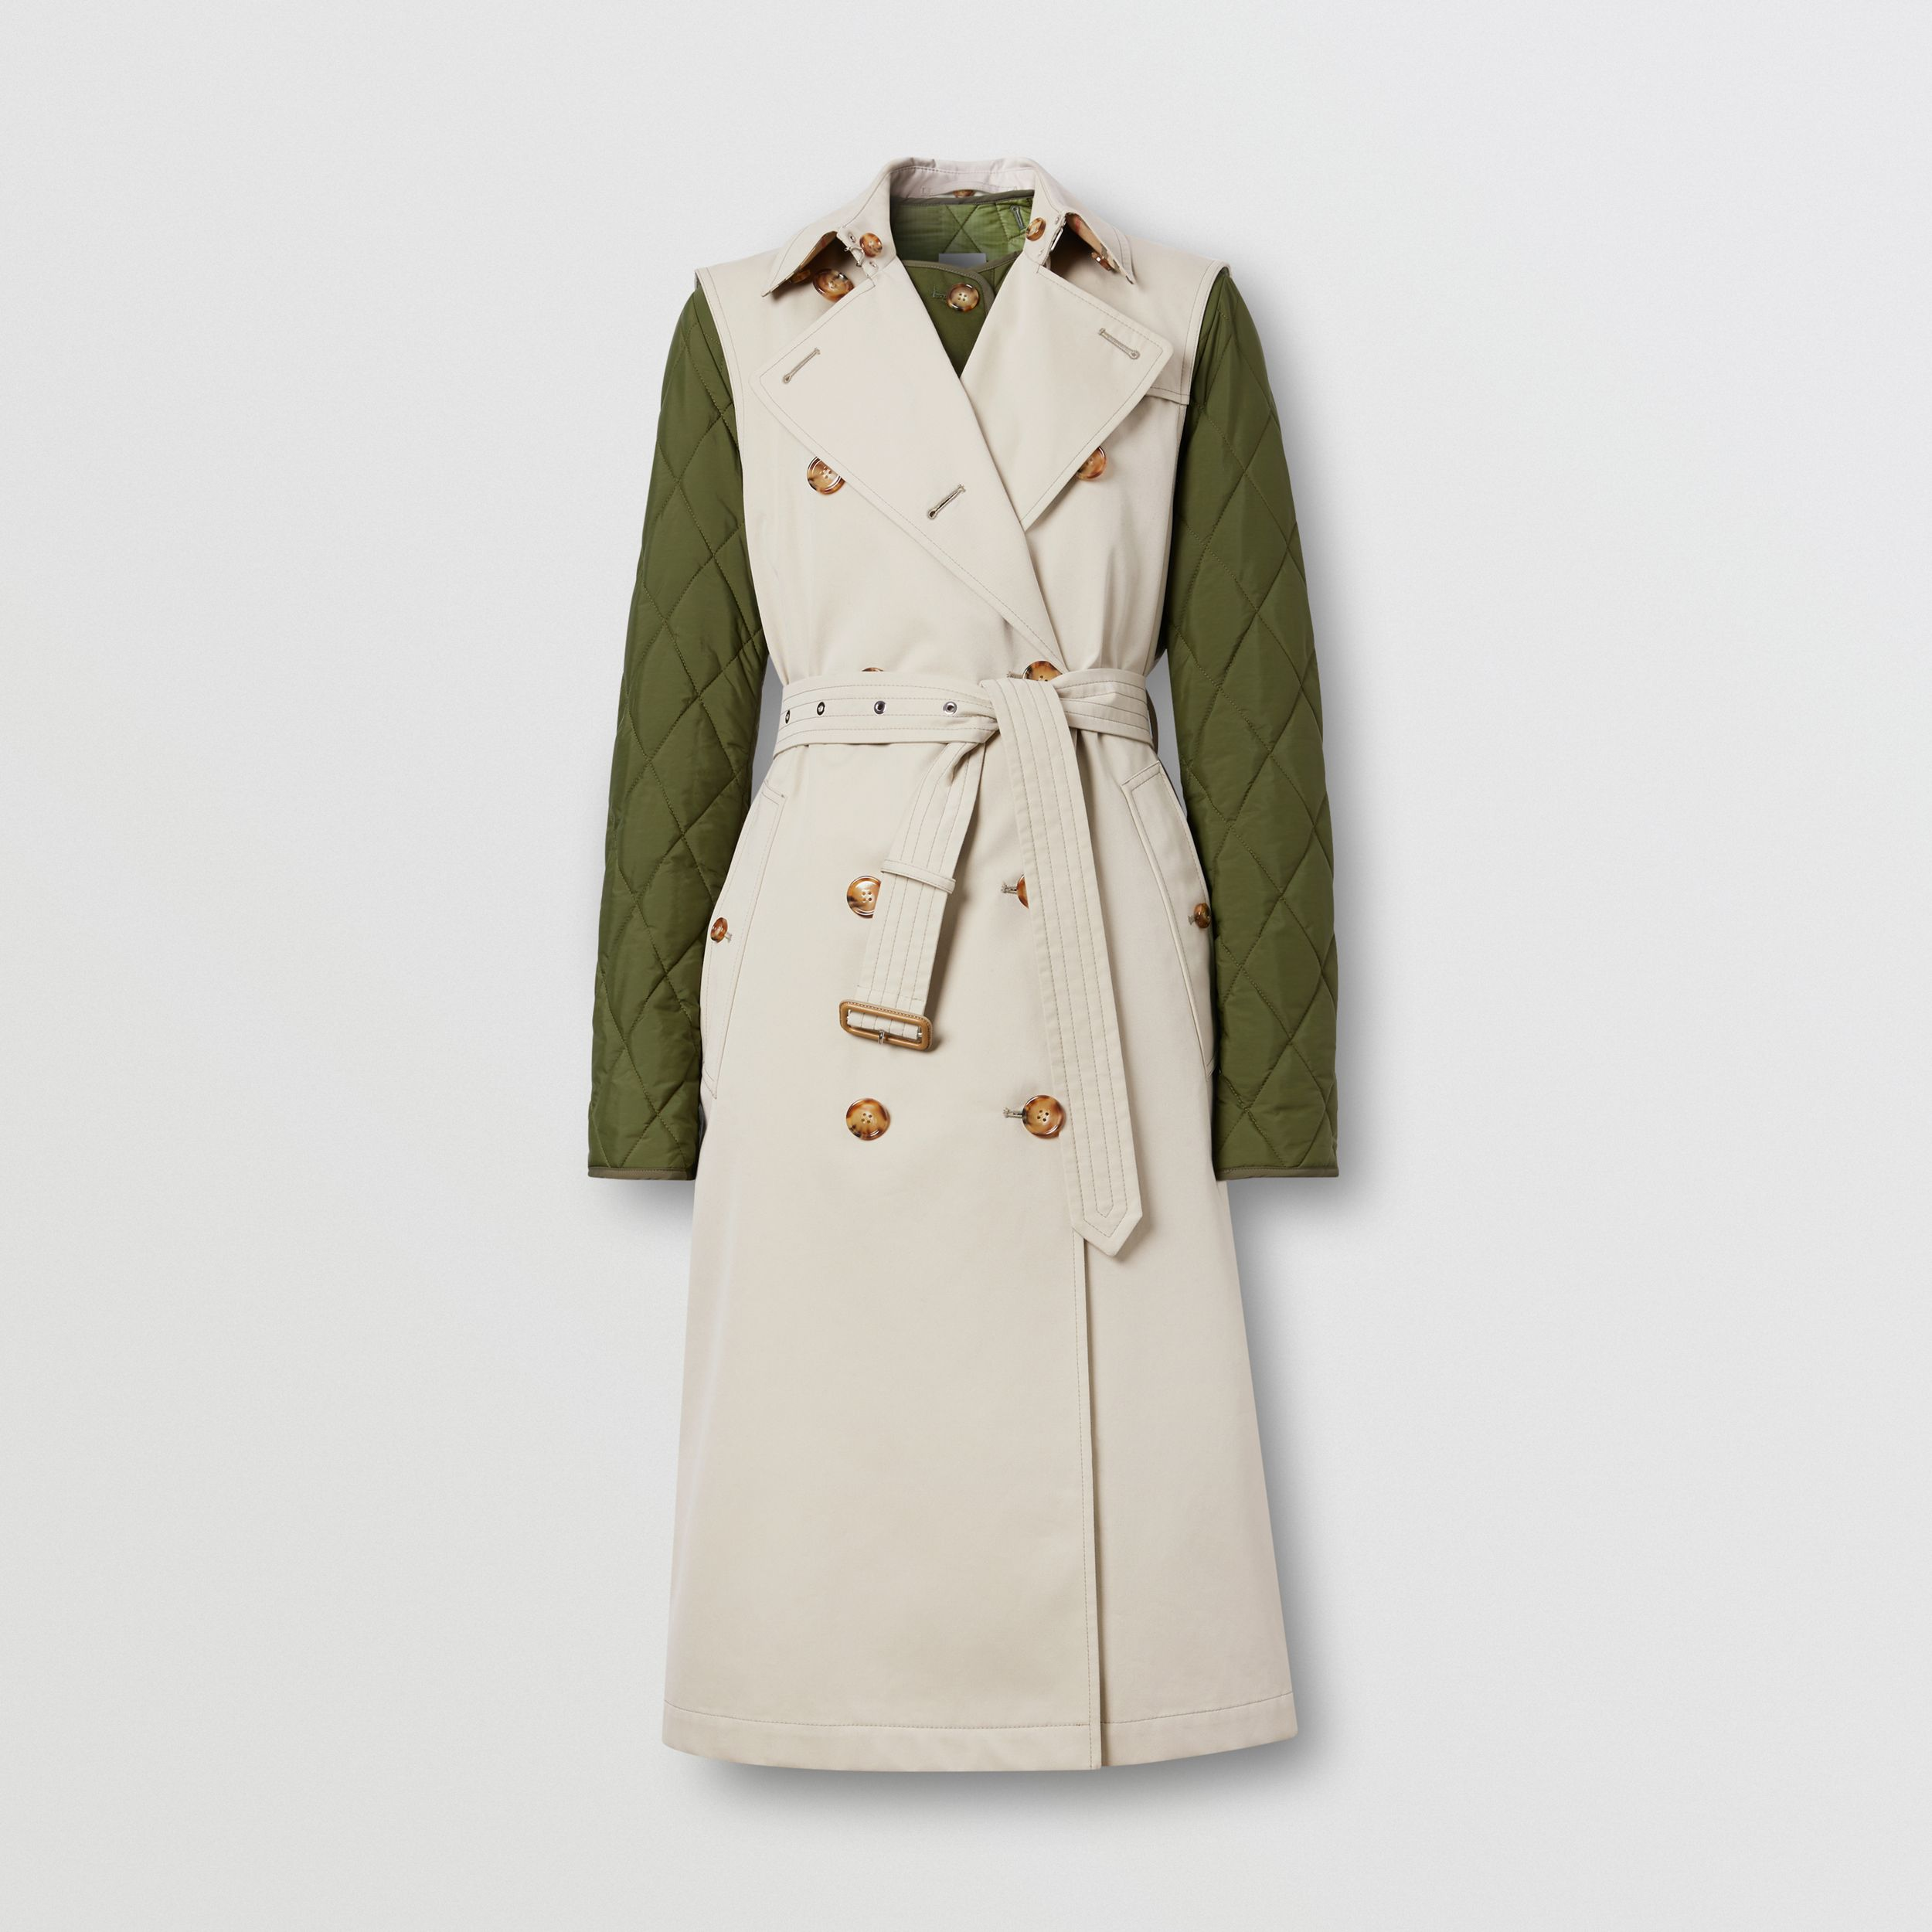 Sleeveless Trench Coat with Detachable Warmer in Stone - Women | Burberry - 4